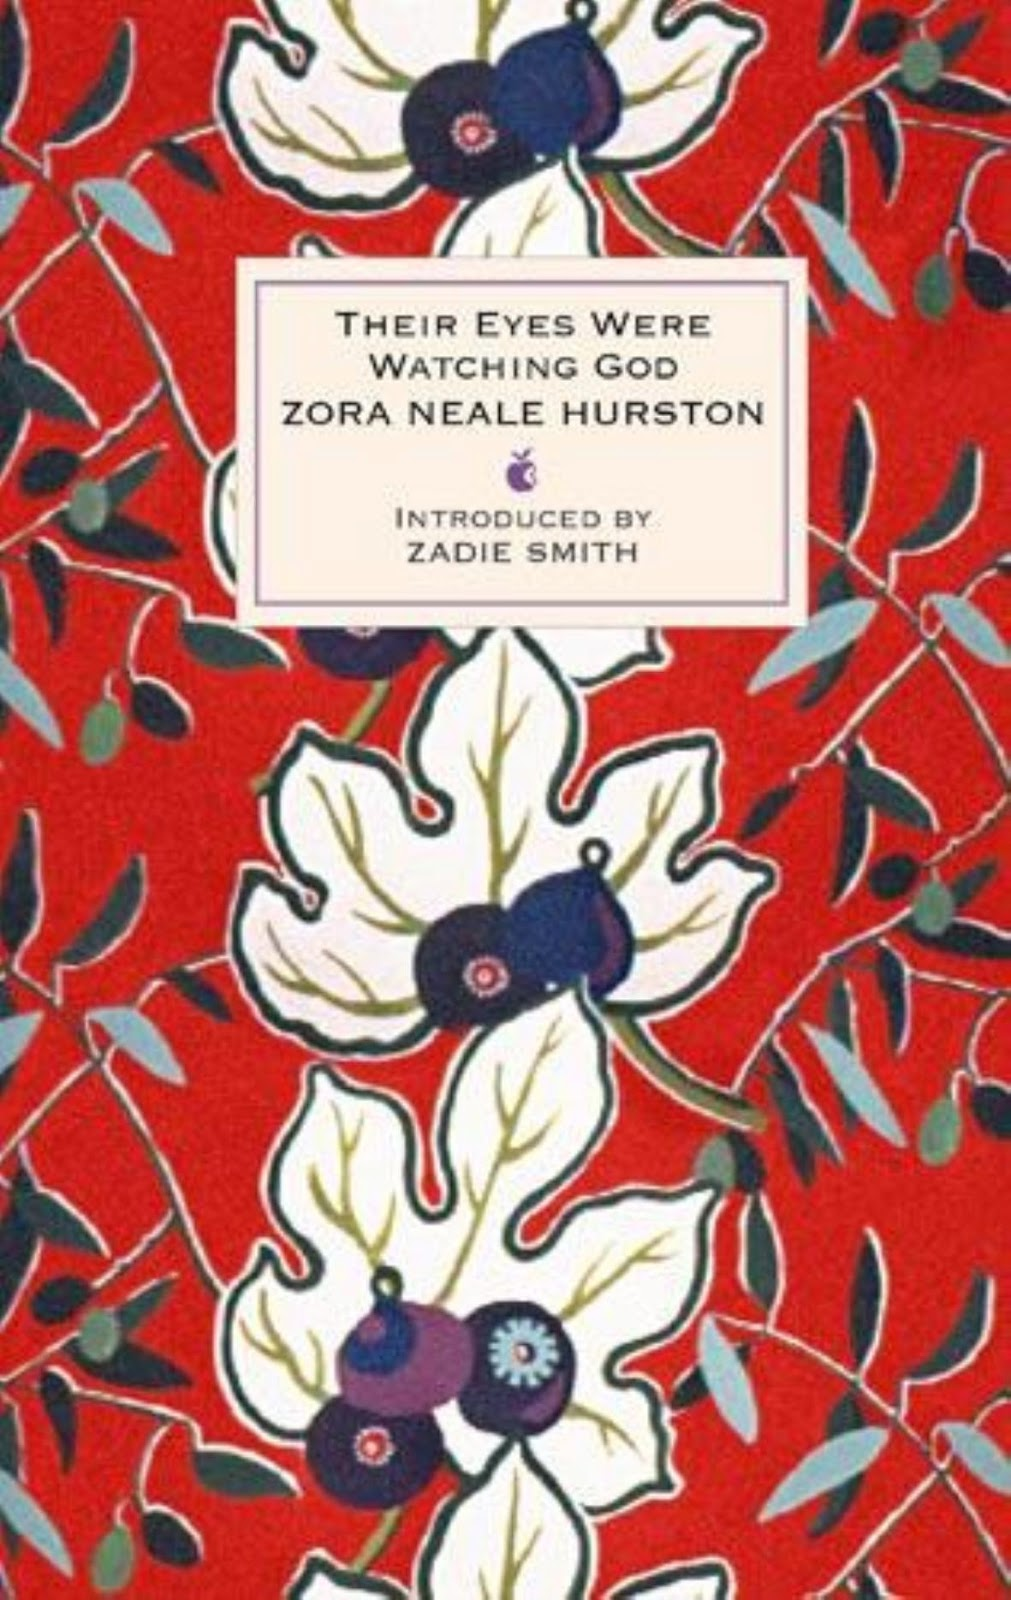 essays on the book their eyes were watching god importance of pear tree in their eyes were watching god essay importance of pear tree in their eyes were watching god essay